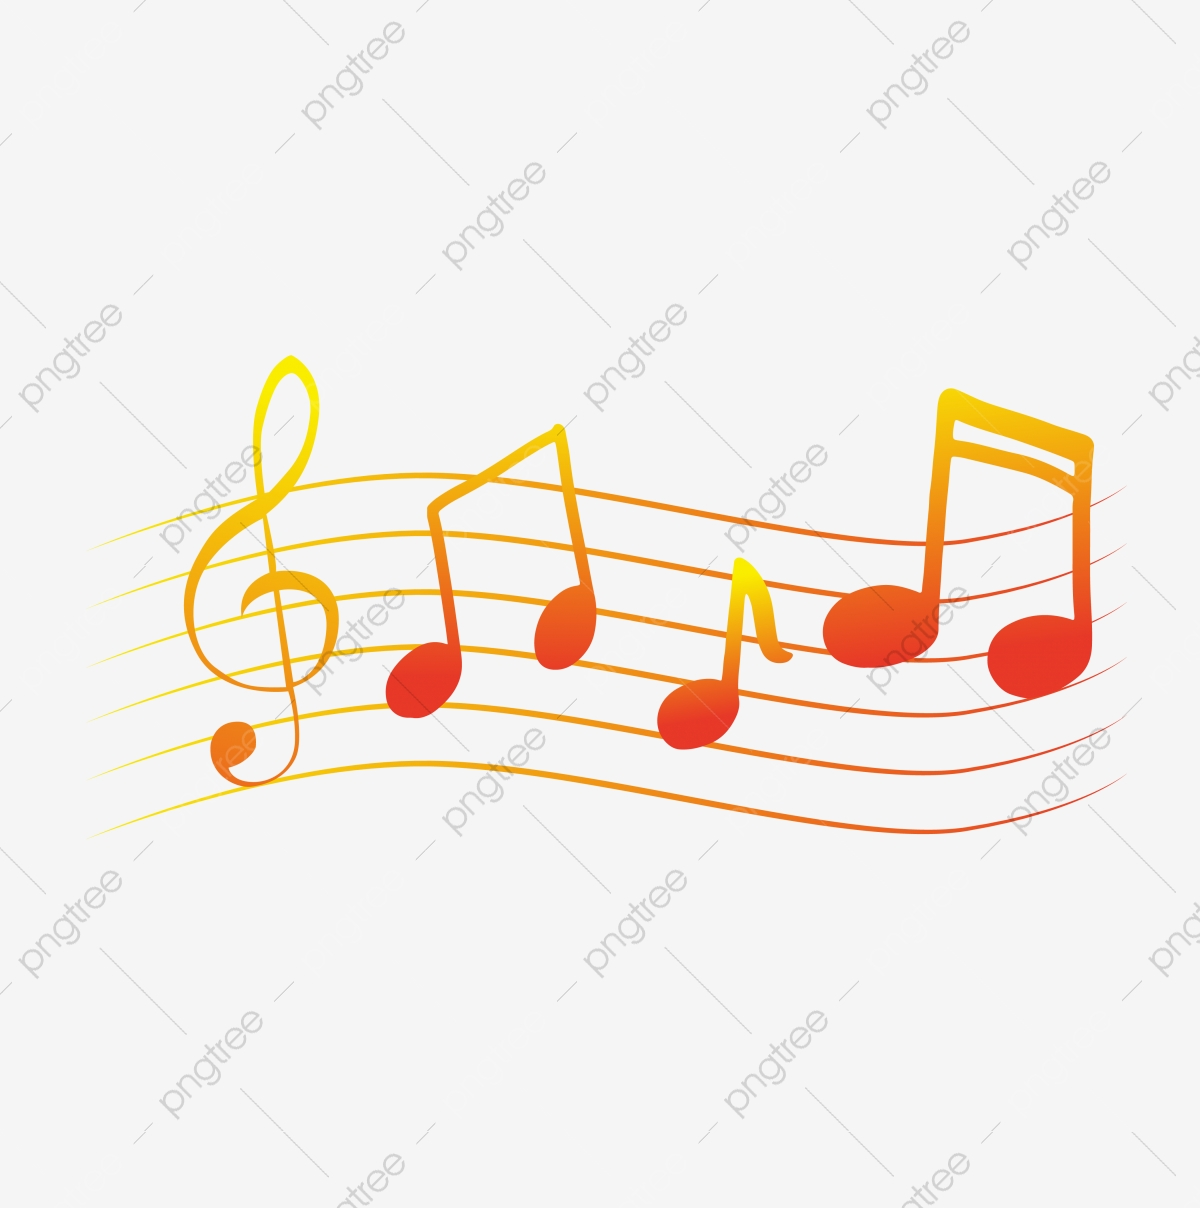 https fr pngtree com freepng vector free buckle cartoon musical note 4575963 html